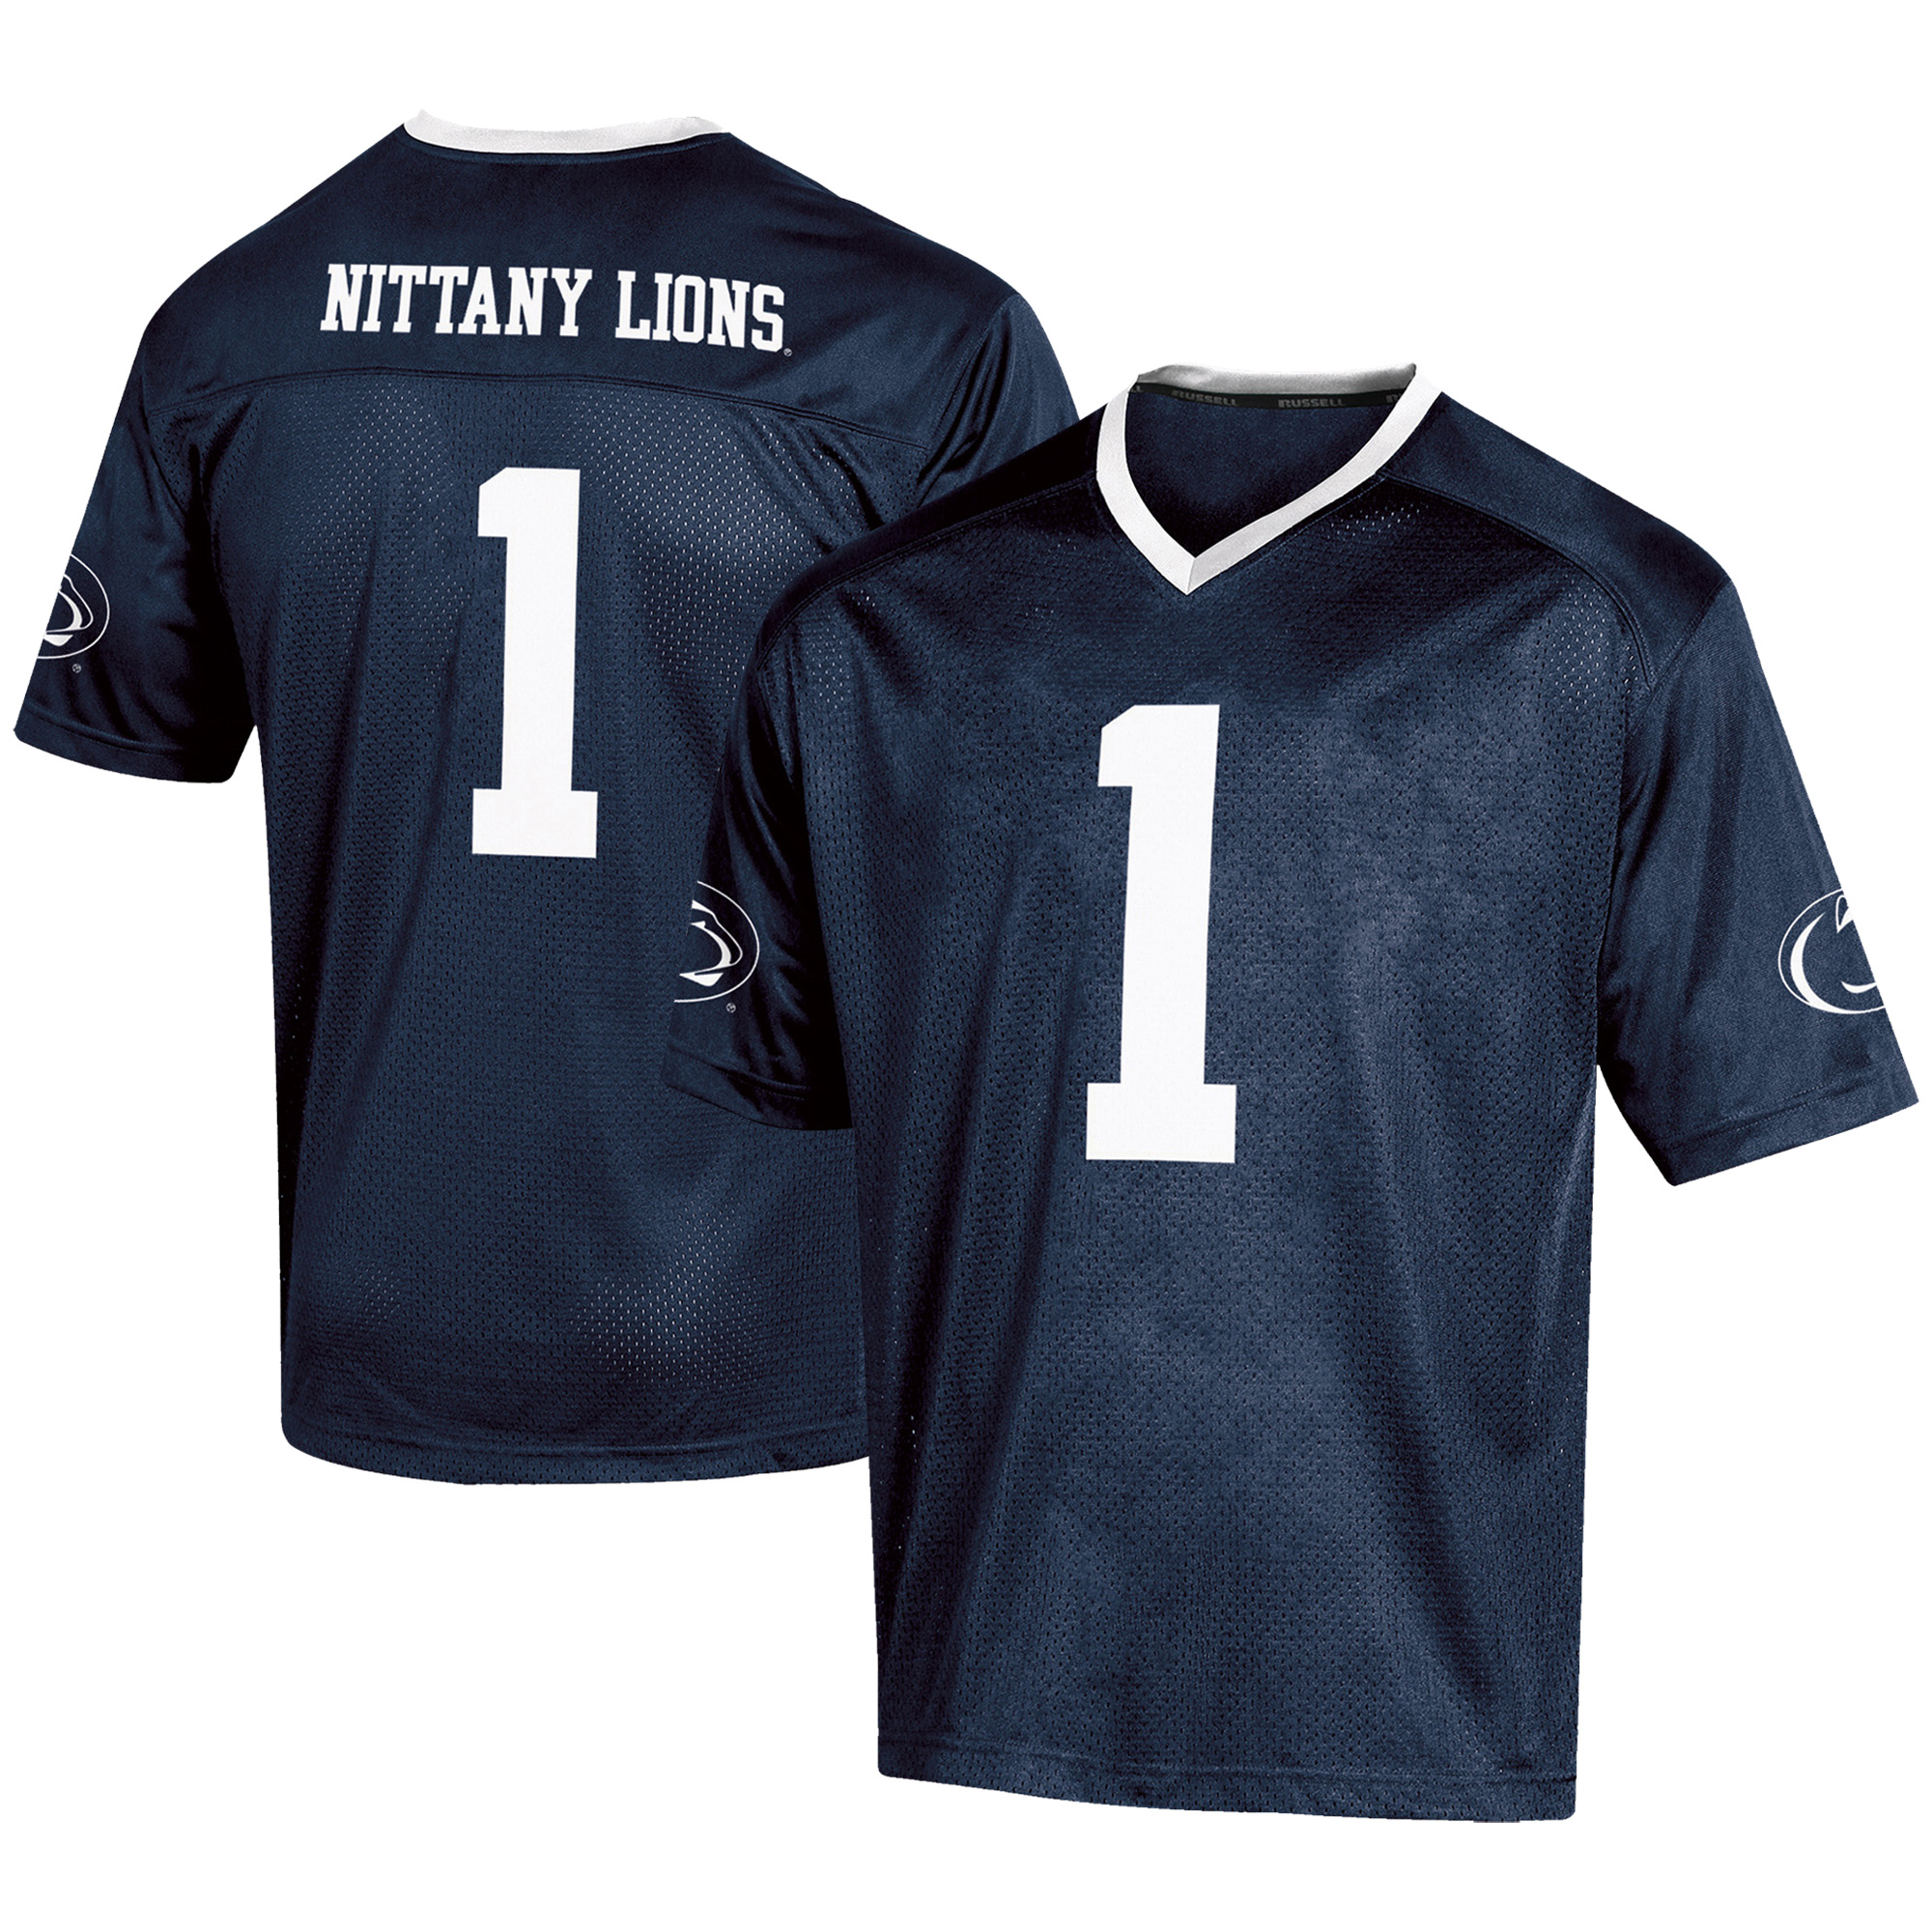 Men's Russell #1 Navy Penn State Nittany Lions Fashion Football Jersey